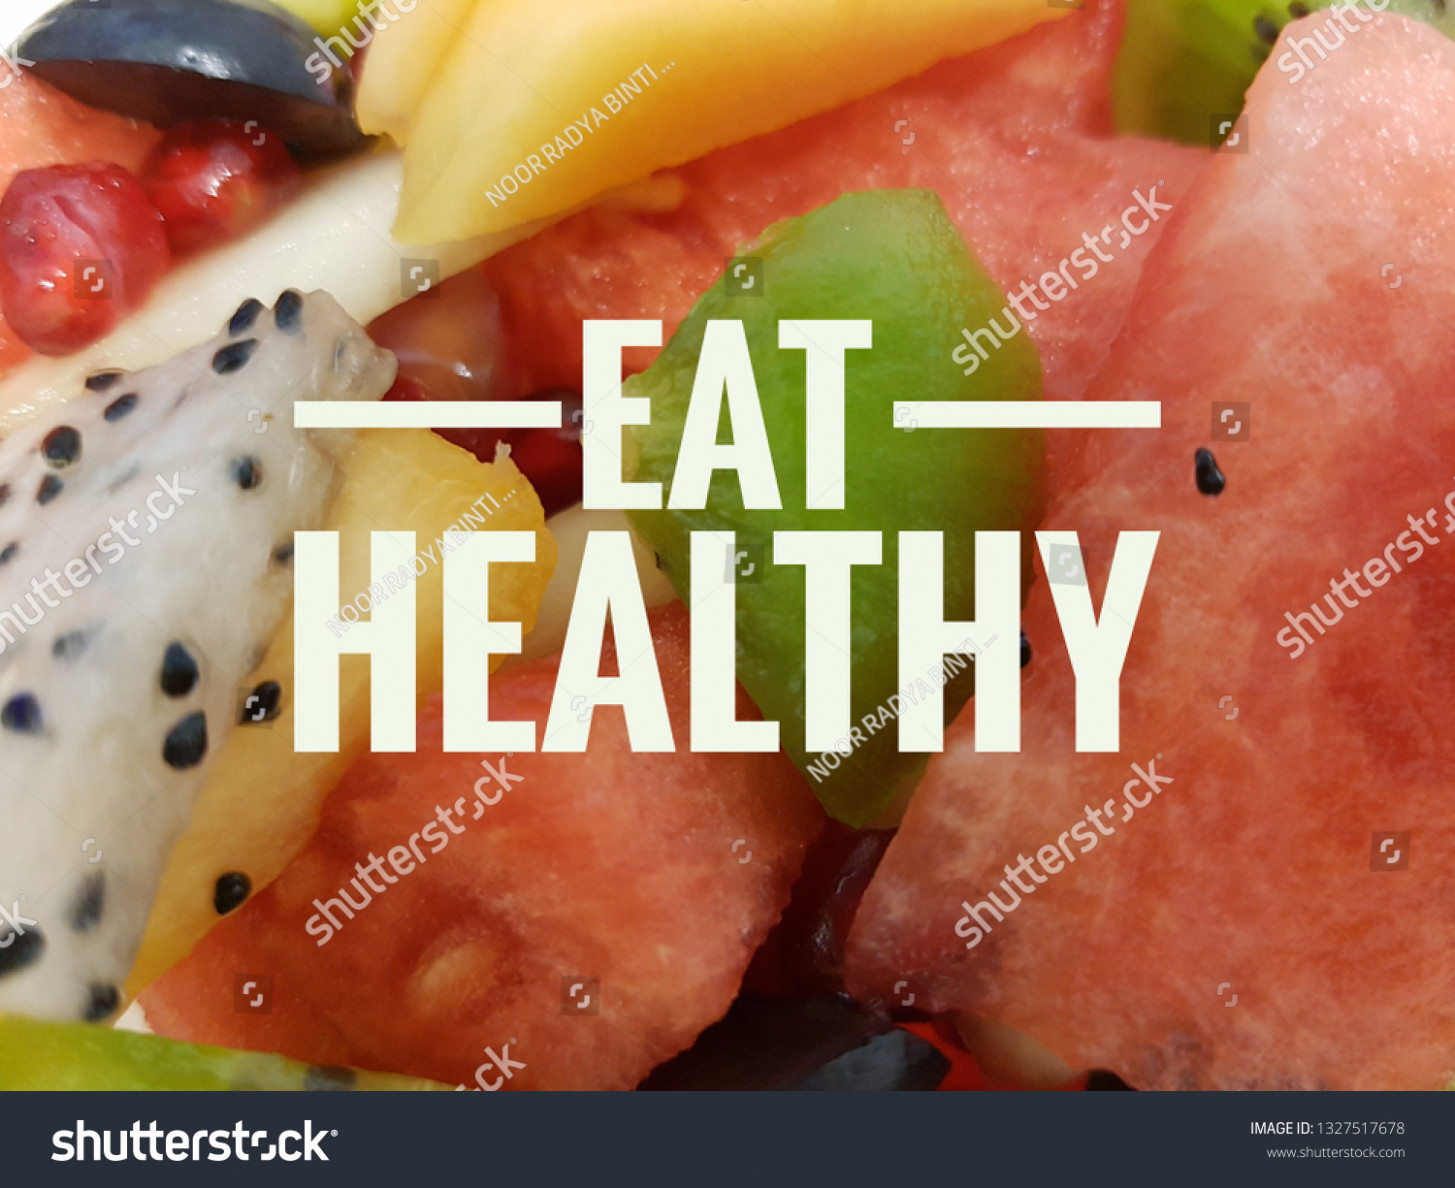 Quotes On Eat Healthy Image Various Stock Photo (Edit Now ..